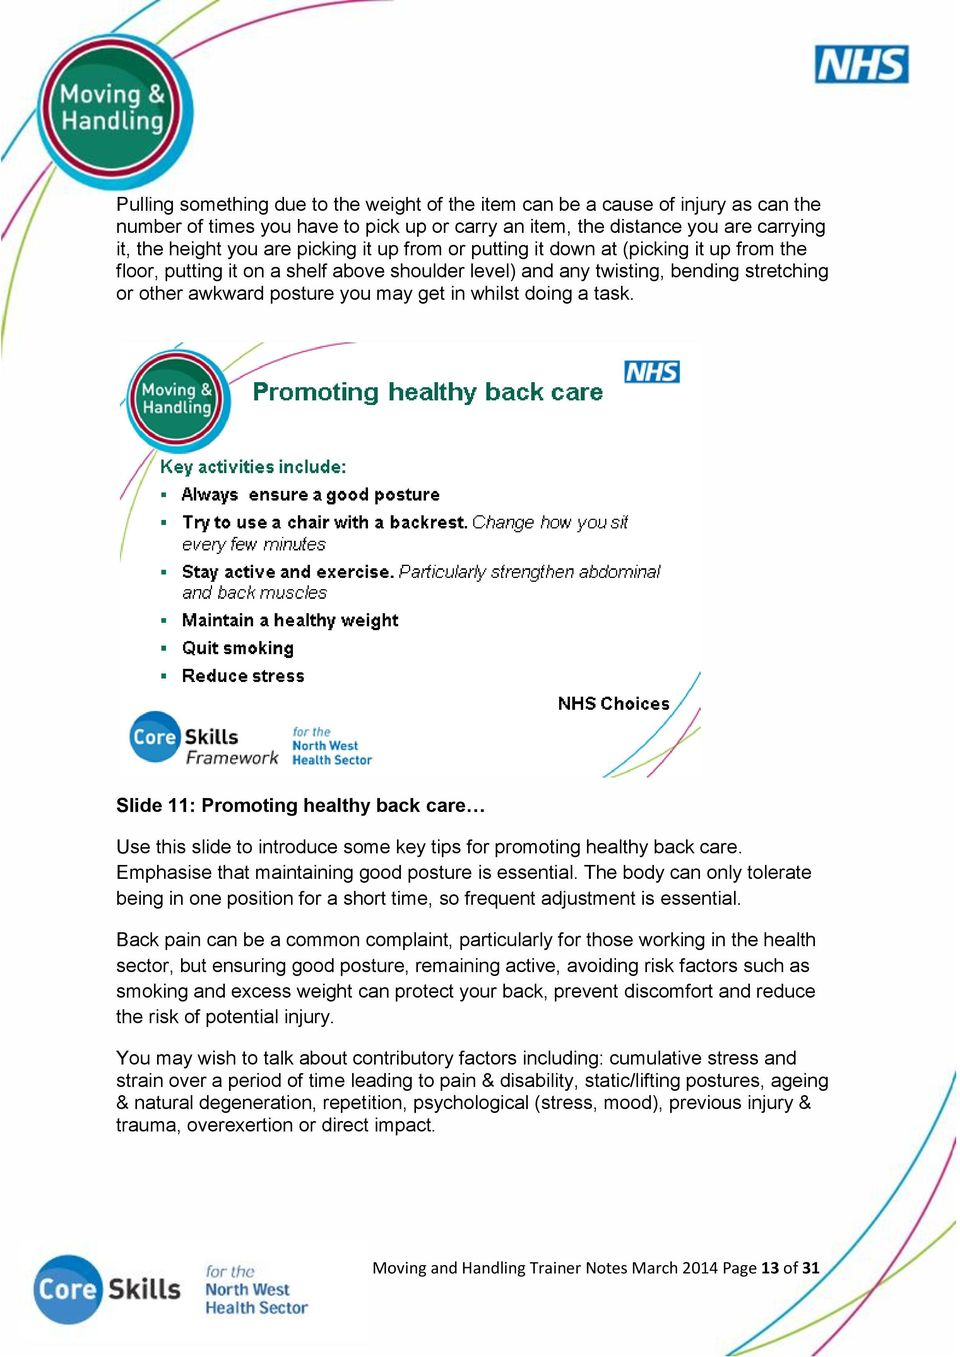 task. Slide 11: Promoting healthy back care Use this slide to introduce some key tips for promoting healthy back care. Emphasise that maintaining good posture is essential.